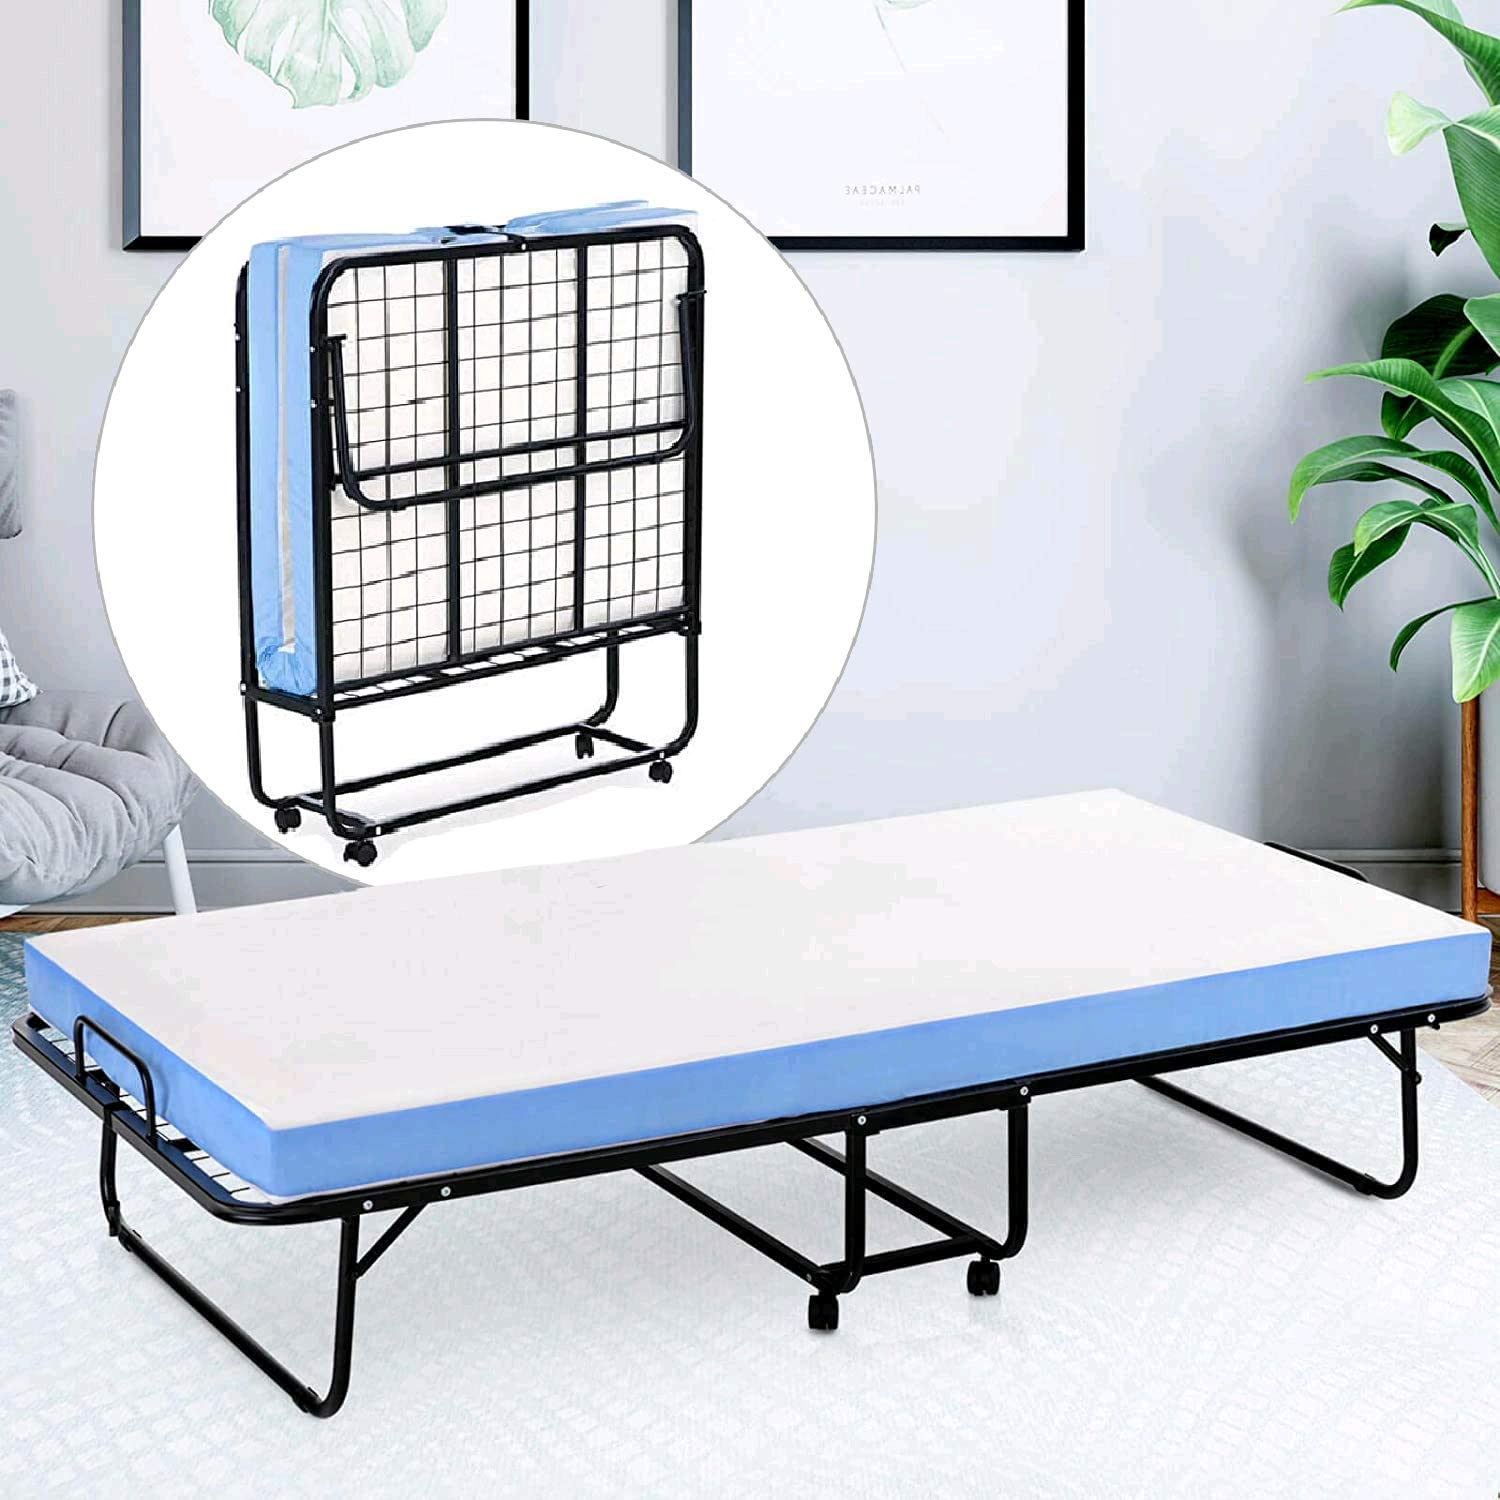 - Amazon.com: Mecor Metal Folding Bed, Rollaway Guest Bed With 4